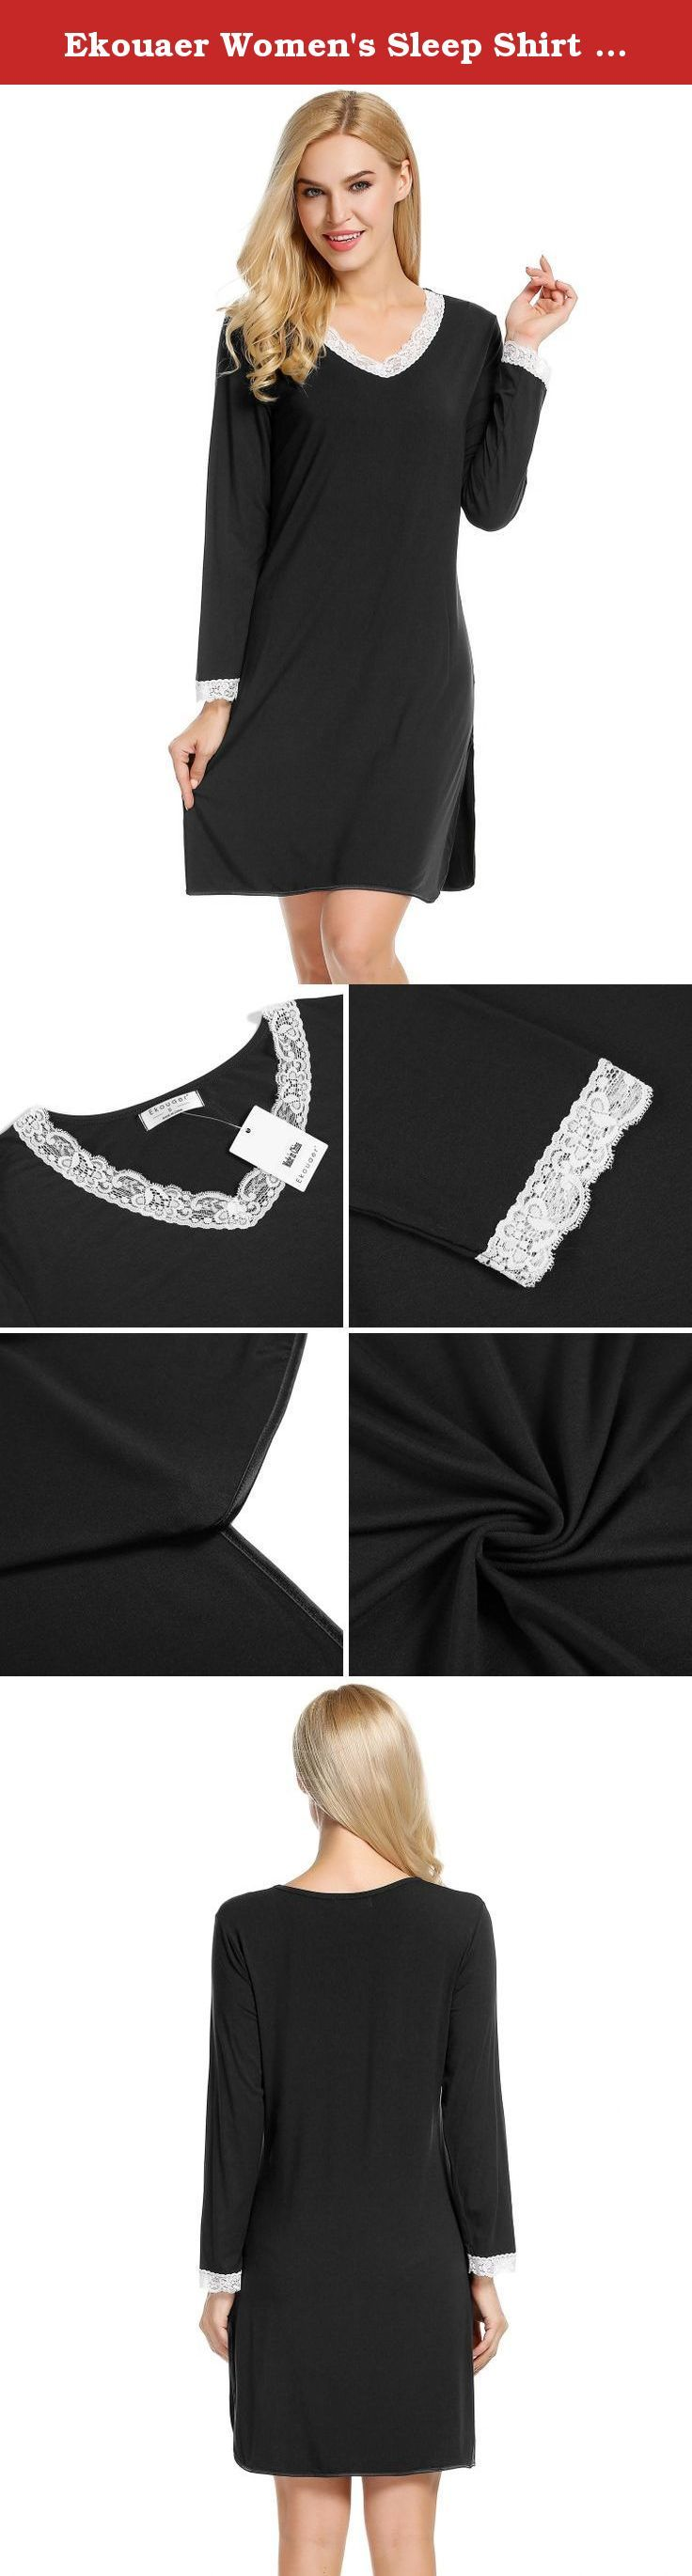 Ekouaer Women's Sleep Shirt Comfort Night Gowns Long-sleeved Pajamas (Black, Medium). Ekouaer Women's Nightshirts Viscose Chemises Slip Long Nightgown Sleepwear S-XXL Super soft, truly comfort lightweight eco-friendly fabric:95% Viscose+5% Elastane; Lace:92% Polyamide+8% Spandex. Comfy long-sleeved knee-length sleepshirt featuring romantic flair with lace at the v-neckline and on the scooped hem. LOVELY CUT AND EASY FIT: With a nice roomy fit, this sleep tee goes great with just about any...